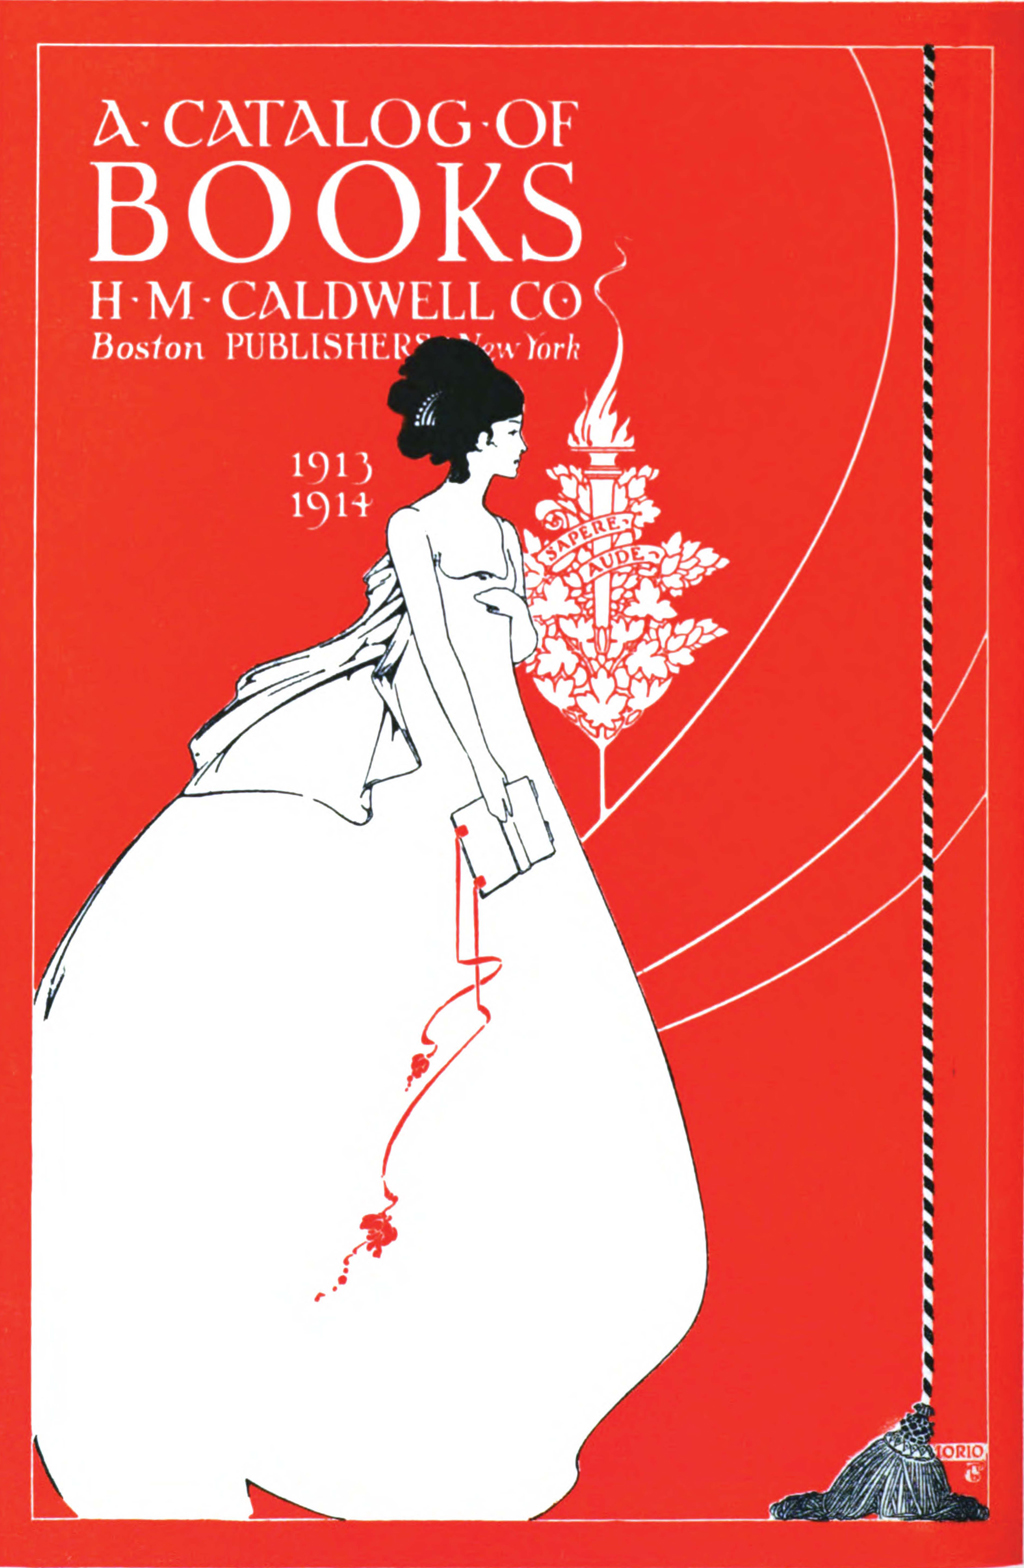 Cover of catalogue for H.H. Cladwell Co.